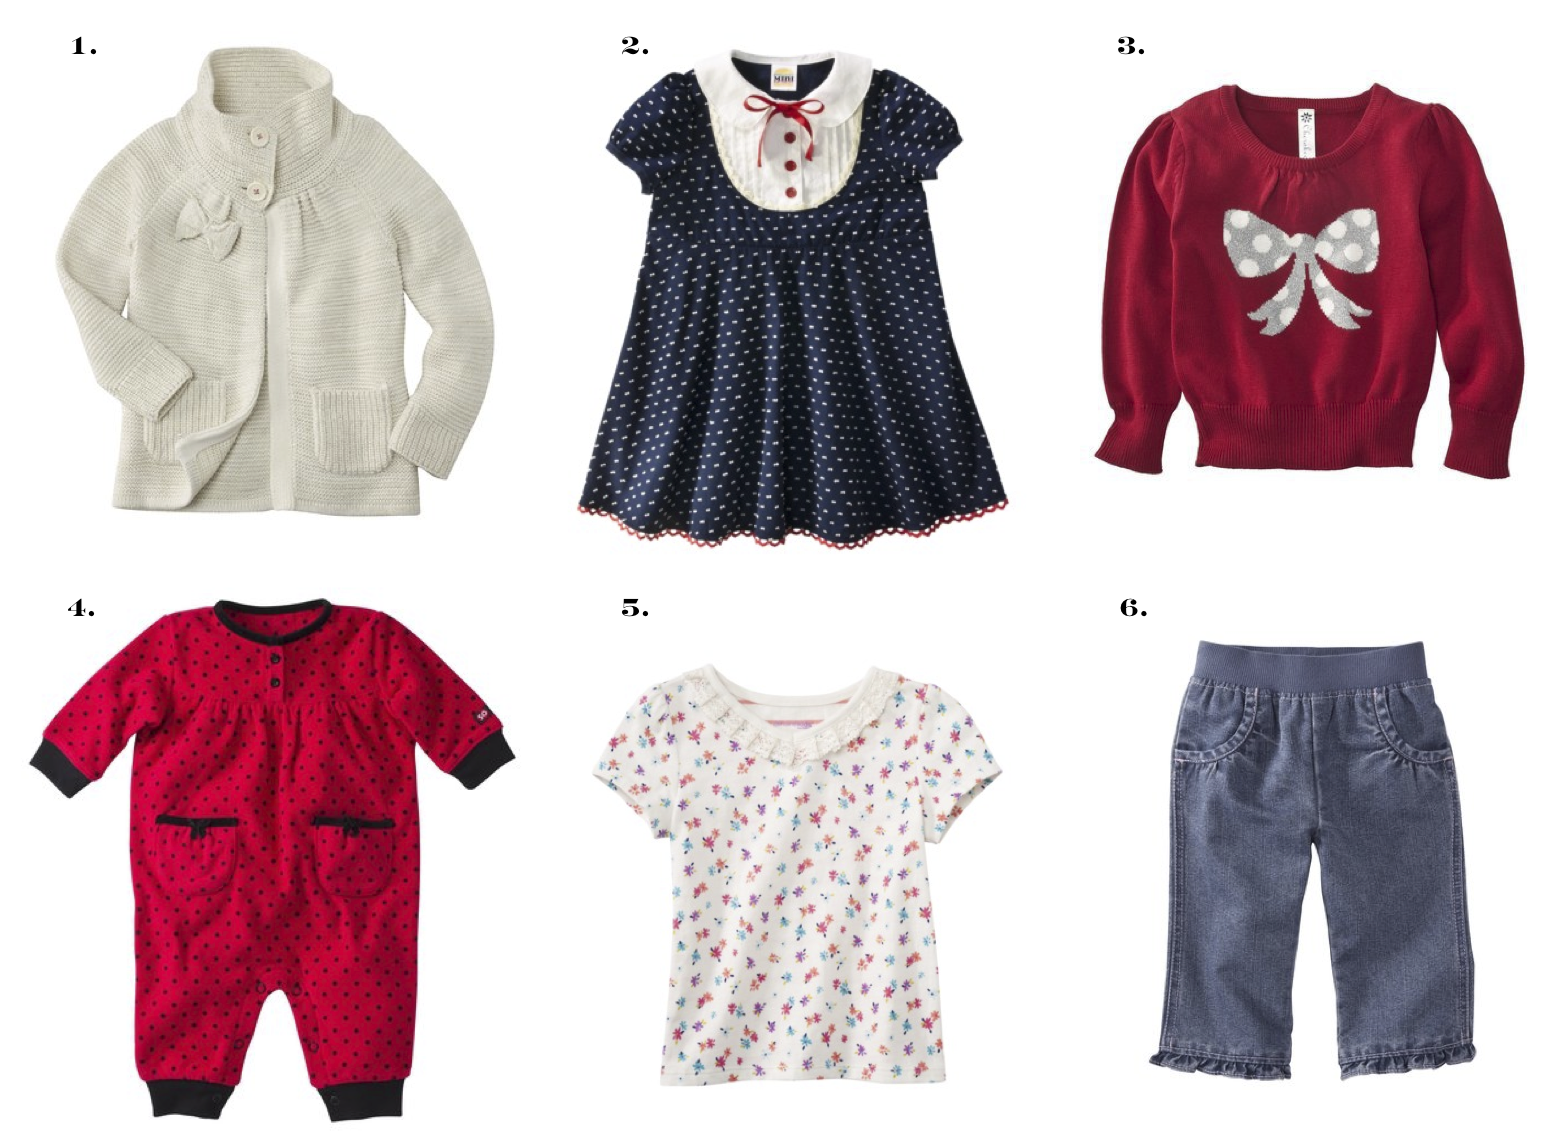 Dressing Fashionably: Stylish Garments For Babies To Wear